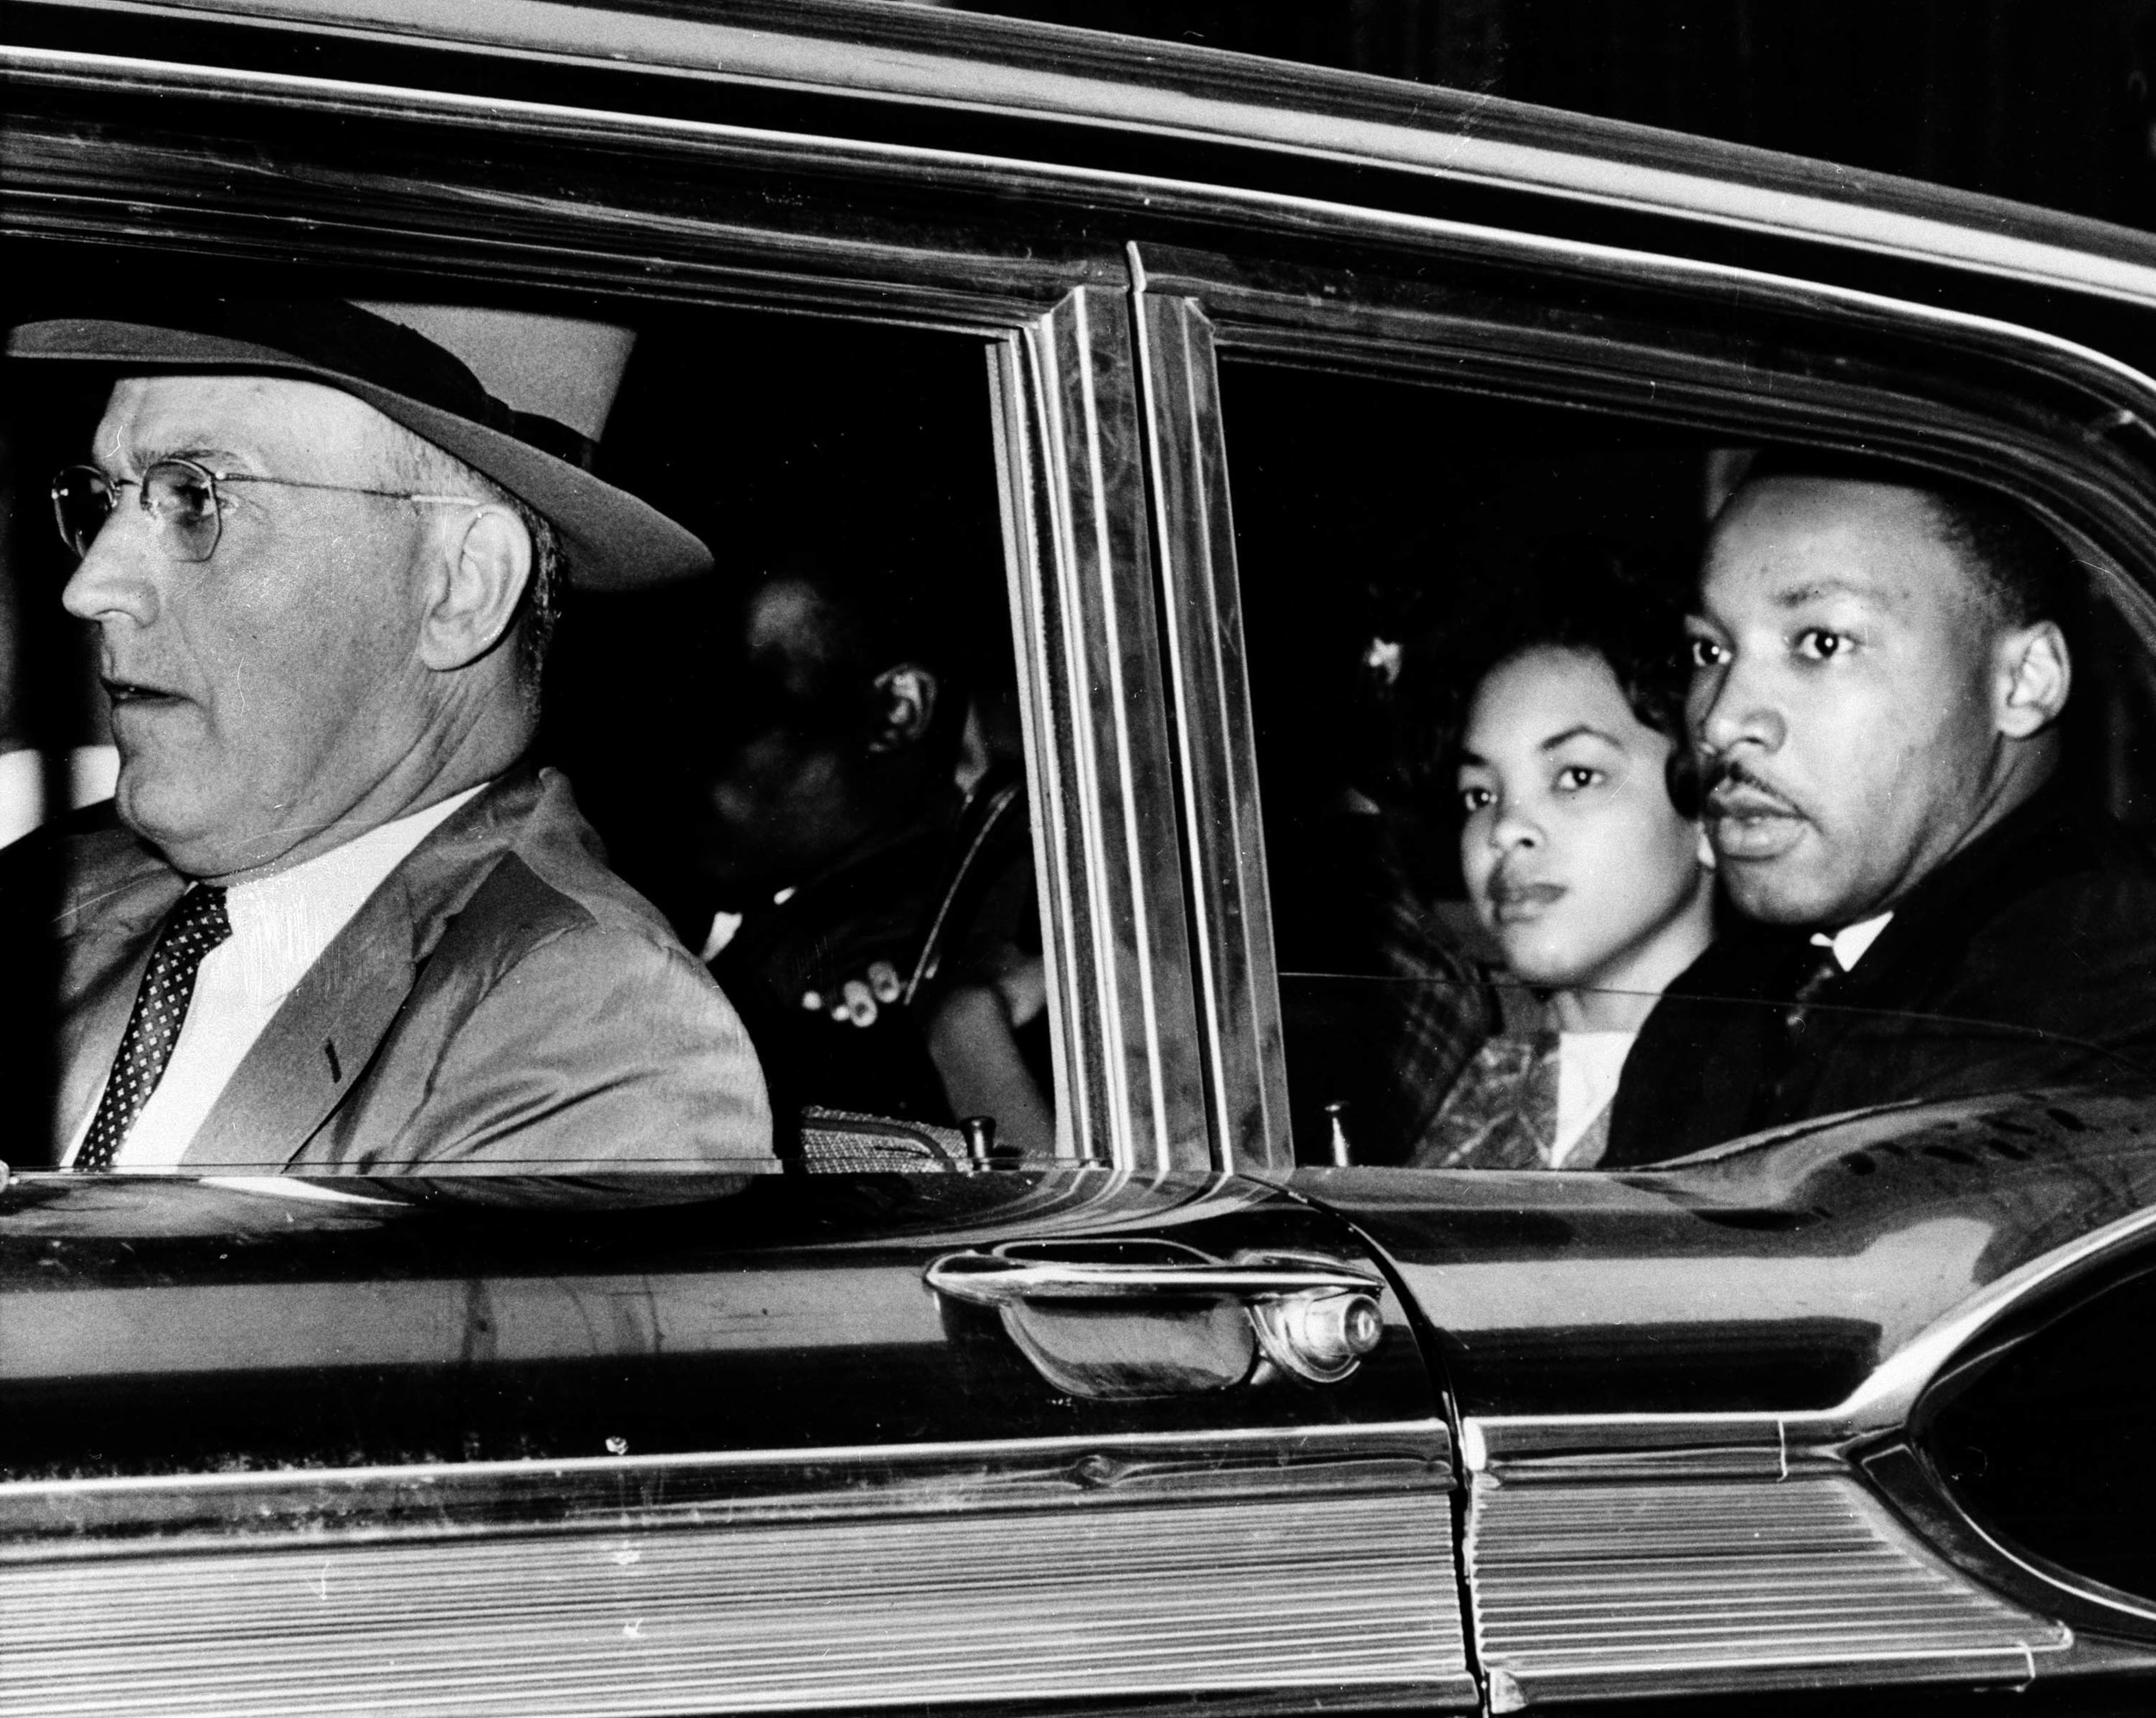 PAGE 53: DR. MARTIN LUTHER KING JR. WAS ARRESTED ALONG WITH 52 STUDENTS ON OCTOBER 19, 1960 FOR ATTEMPTING TO INTEGRATE A CAFETERIA AT RICH'S DEPARTMENT STORE.TAKEN AWAY IN A POLICE CAR DRIVEN BY ATLANTA POLICE CAPTAIN R.E.. LITTLE ARE DR. KING AND STUDENT ACTIVISTS, AGNUS BLONDEAN ORBERT (NELSON), MARILYN PRICE, AND LONNIE KING (OBSCURED).